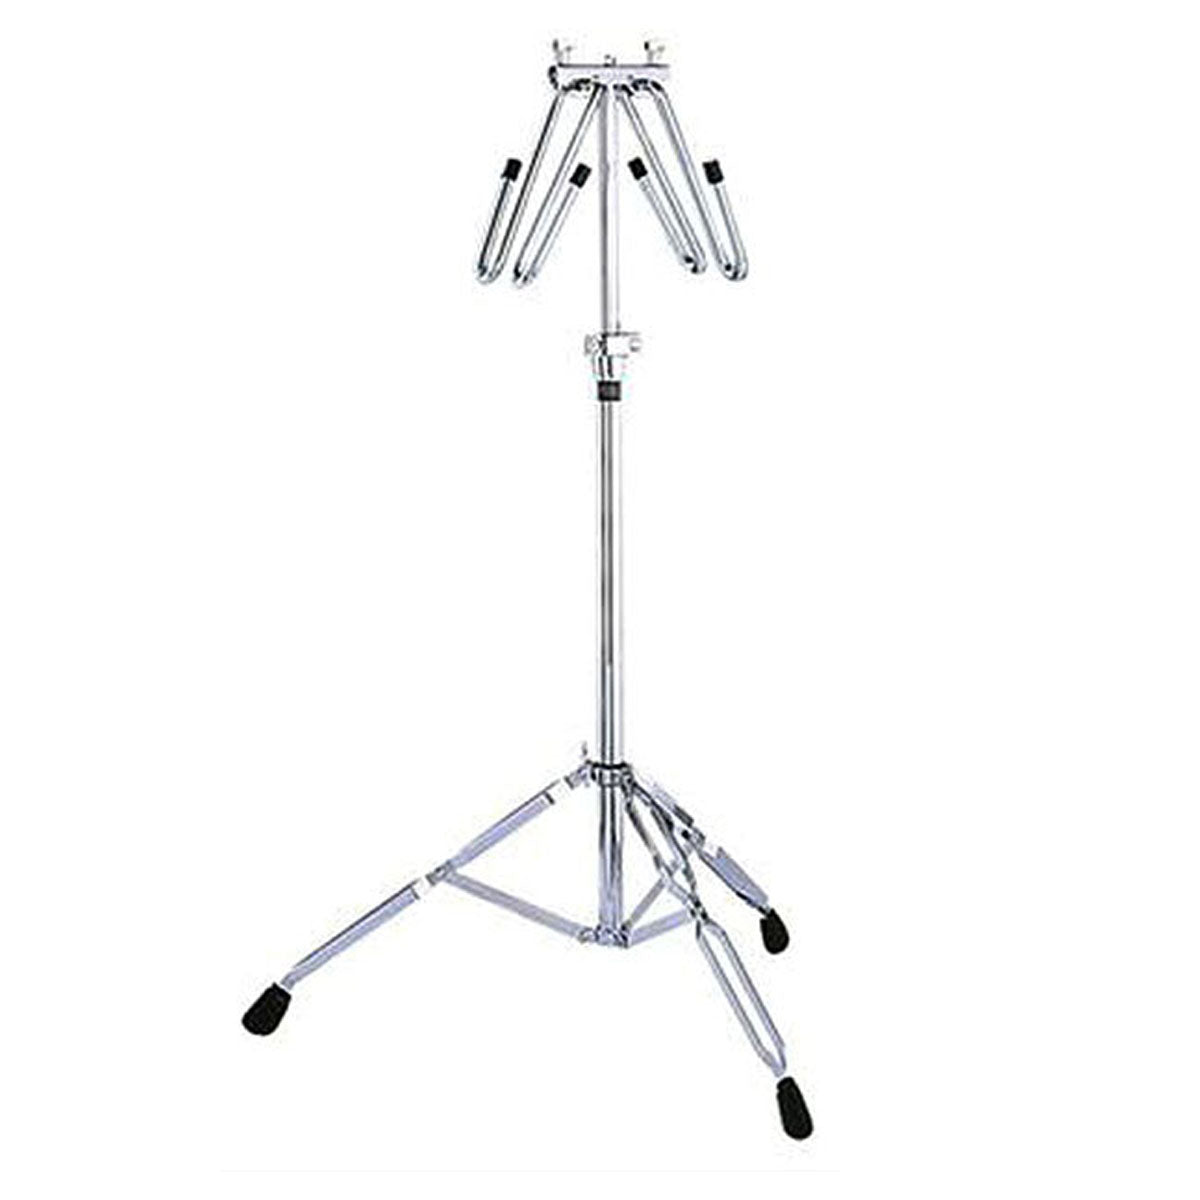 Dixon Concert Cymbal Stand Holds Two Handheld Cymbals - PSY9804C